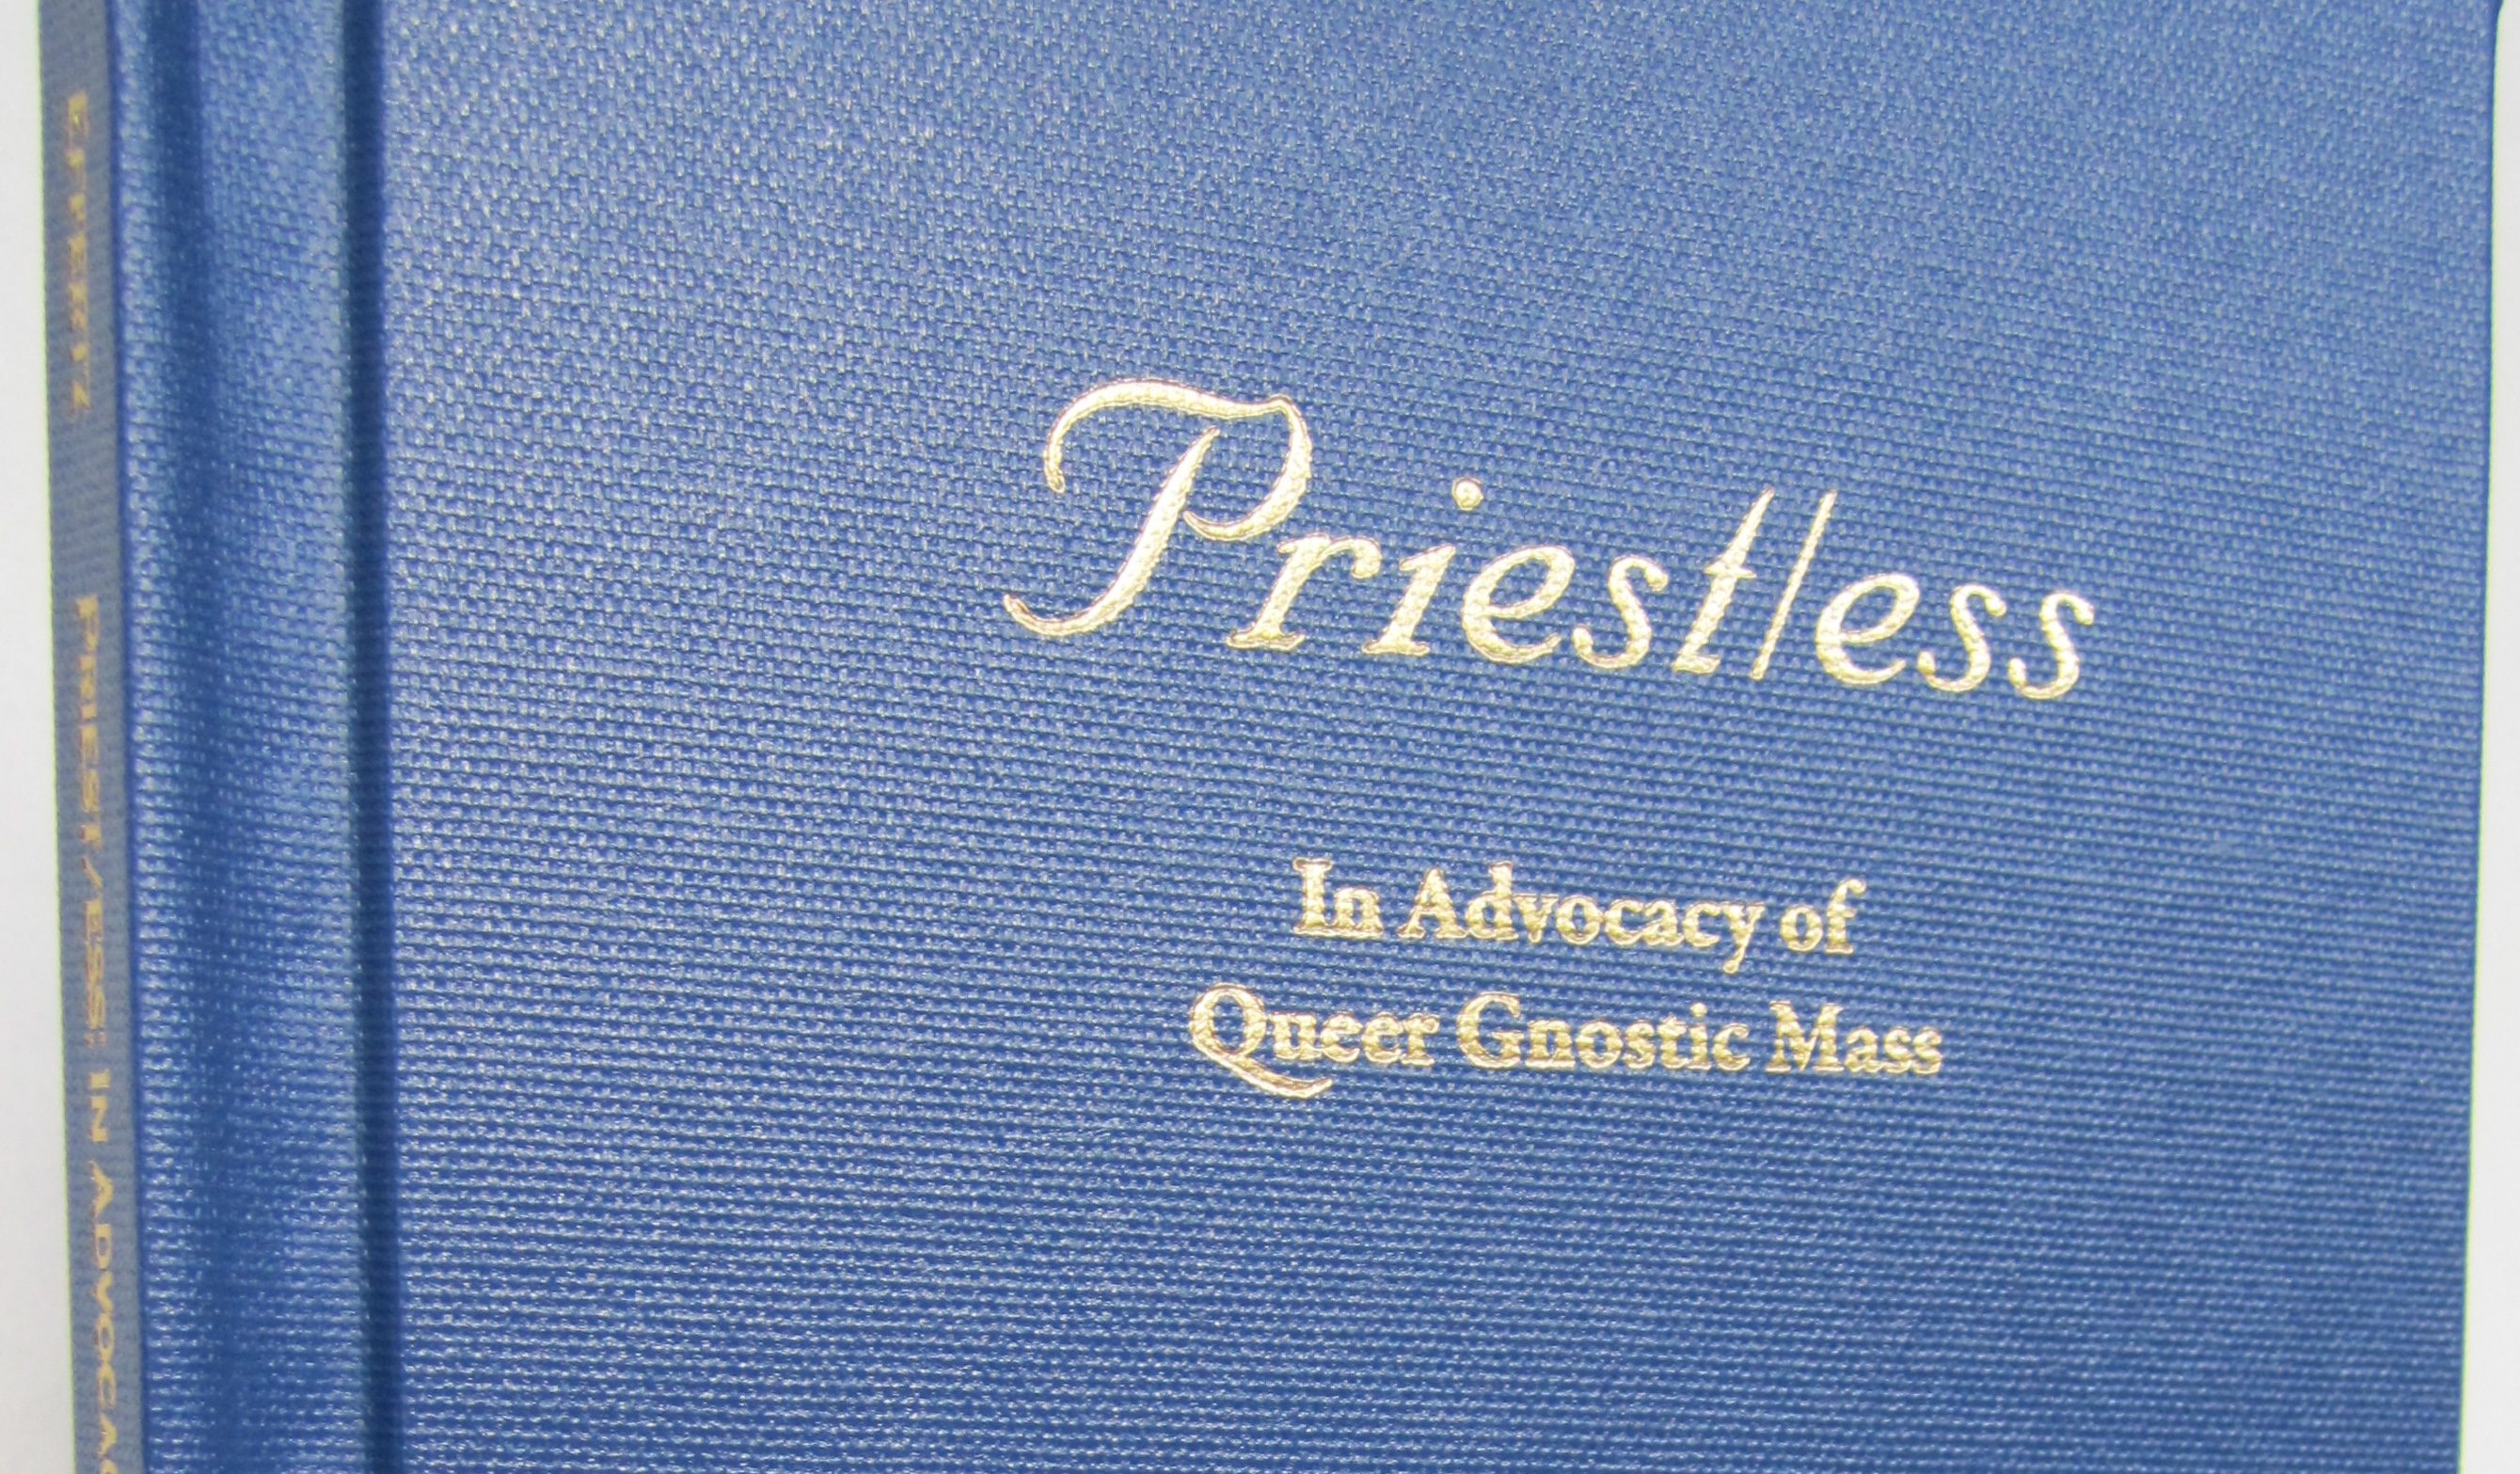 Priest/ess: In Advocacy of Queer Gnostic Mass